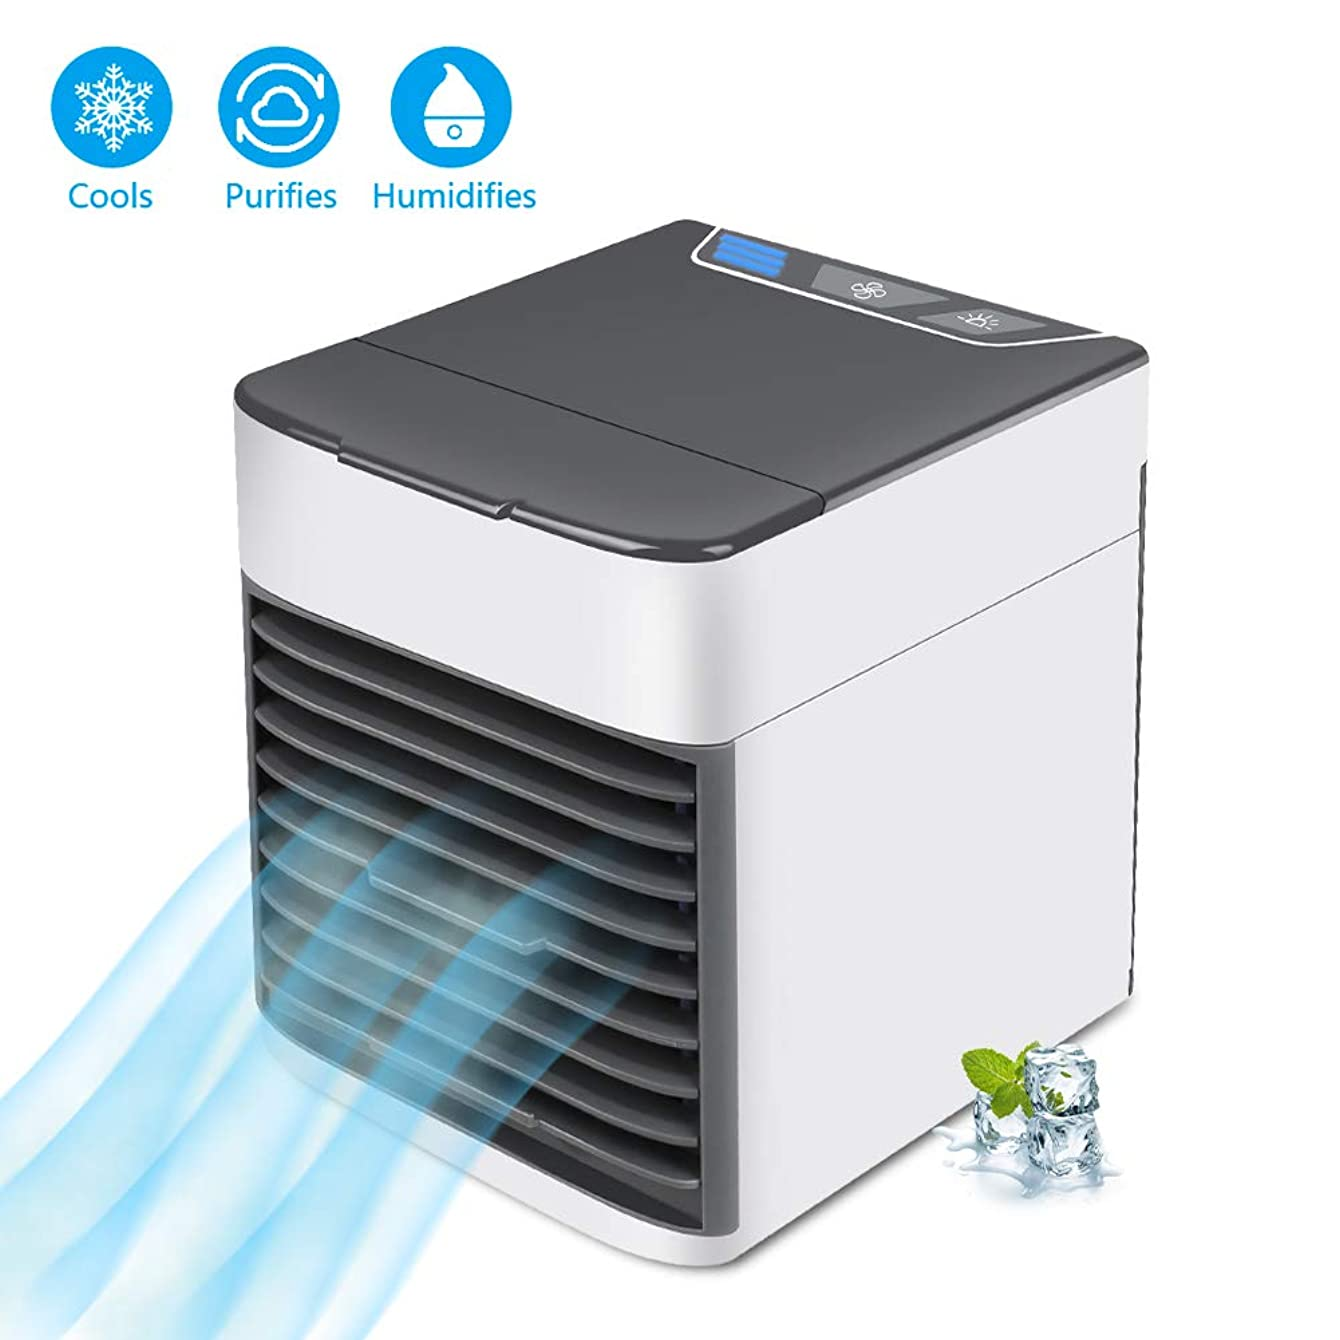 【Upgrade】 Sunis Air Cooler Ultra Mini USB Fan Air Conditioner Portable Arctic Air Freeze